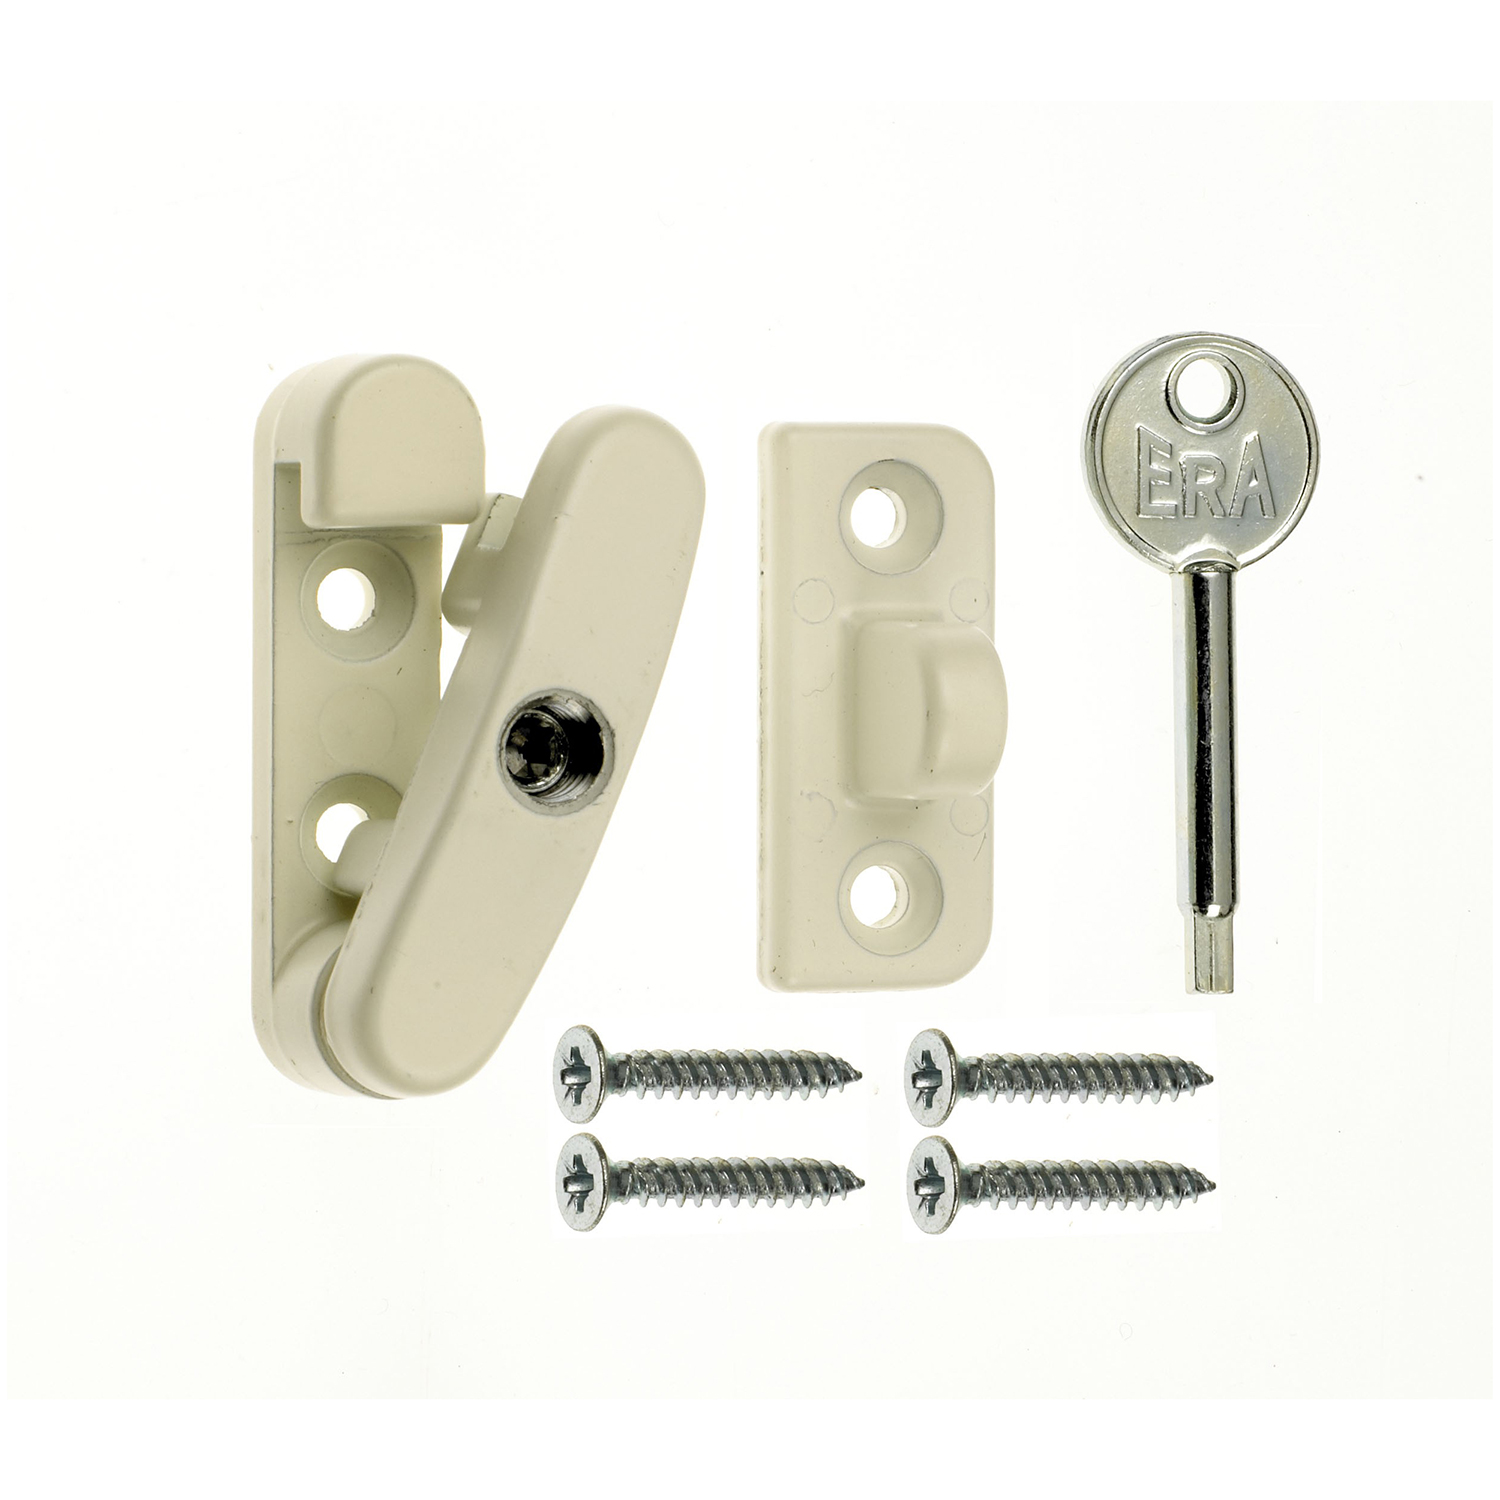 Swinglock for Timber Windows Standard Key